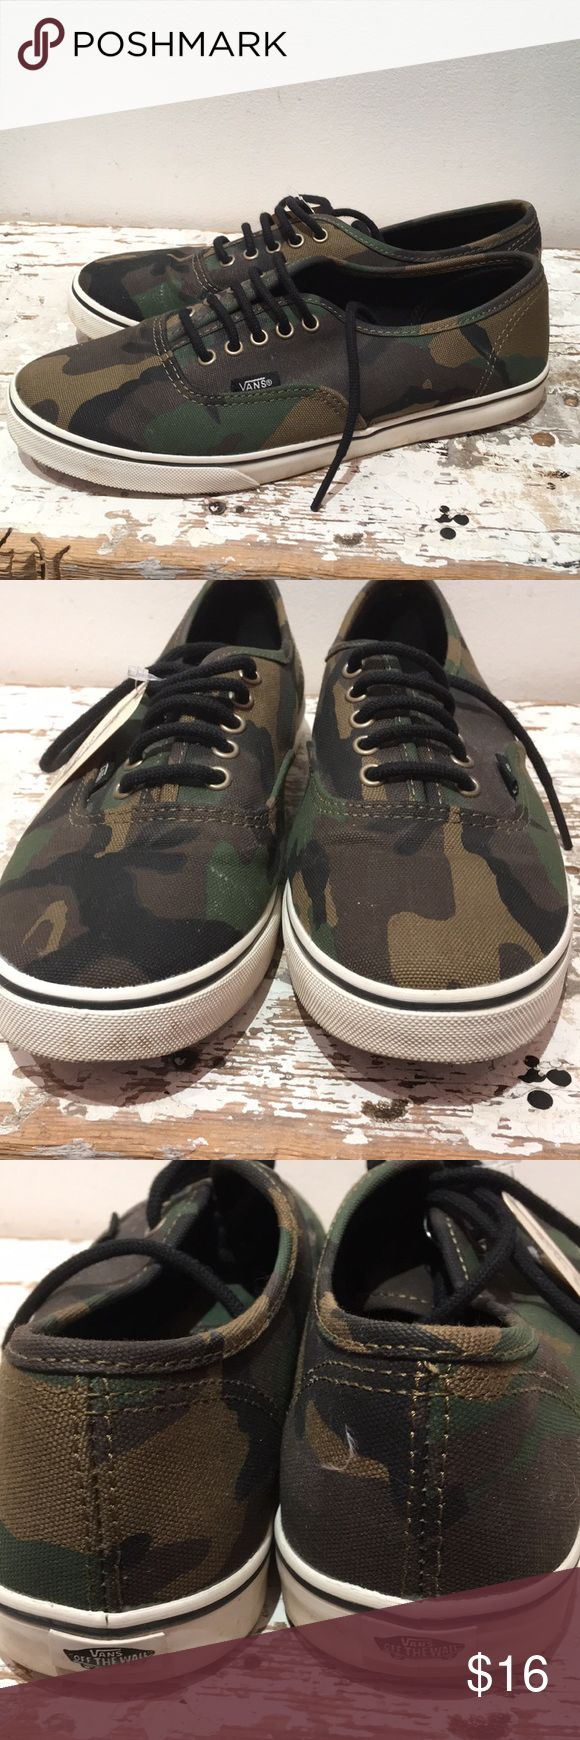 Vans Camo Vans Sneakers. Good condition. Not worn much. Some scuffs on side of white rubber sides. See photos. Vans Shoes Sneakers